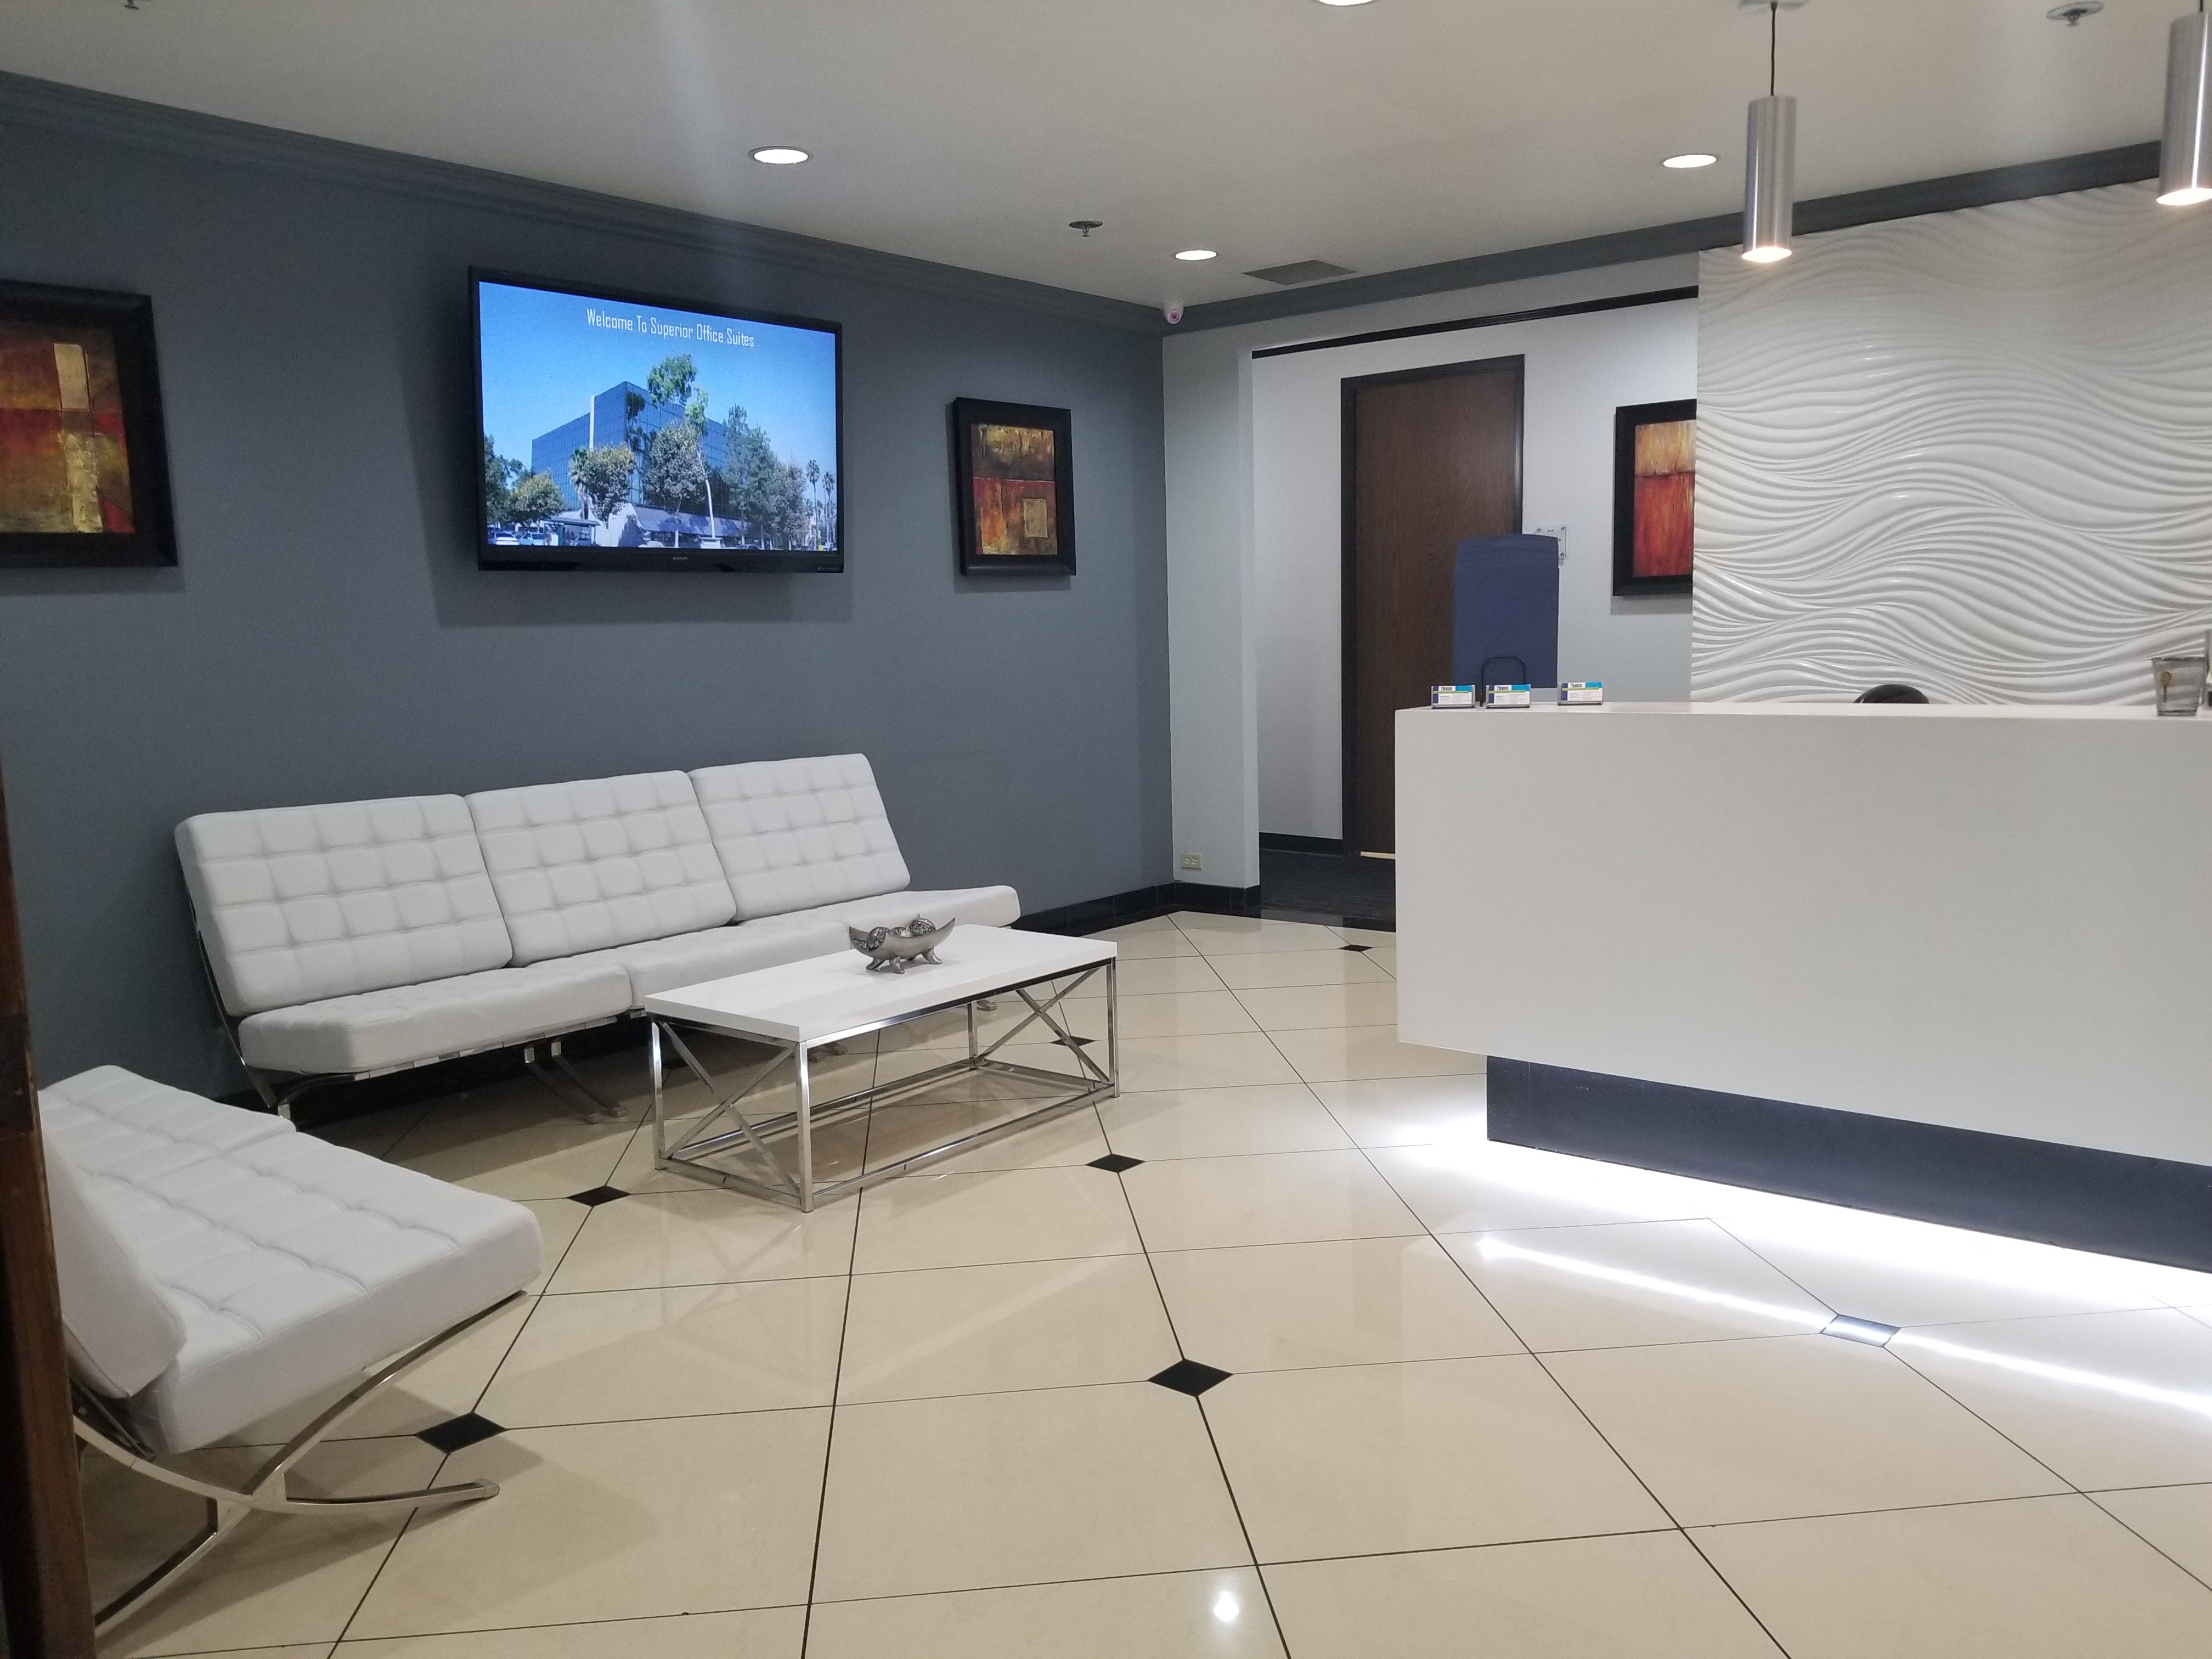 Receptionist Lobby - Virtual Offices in Ontario